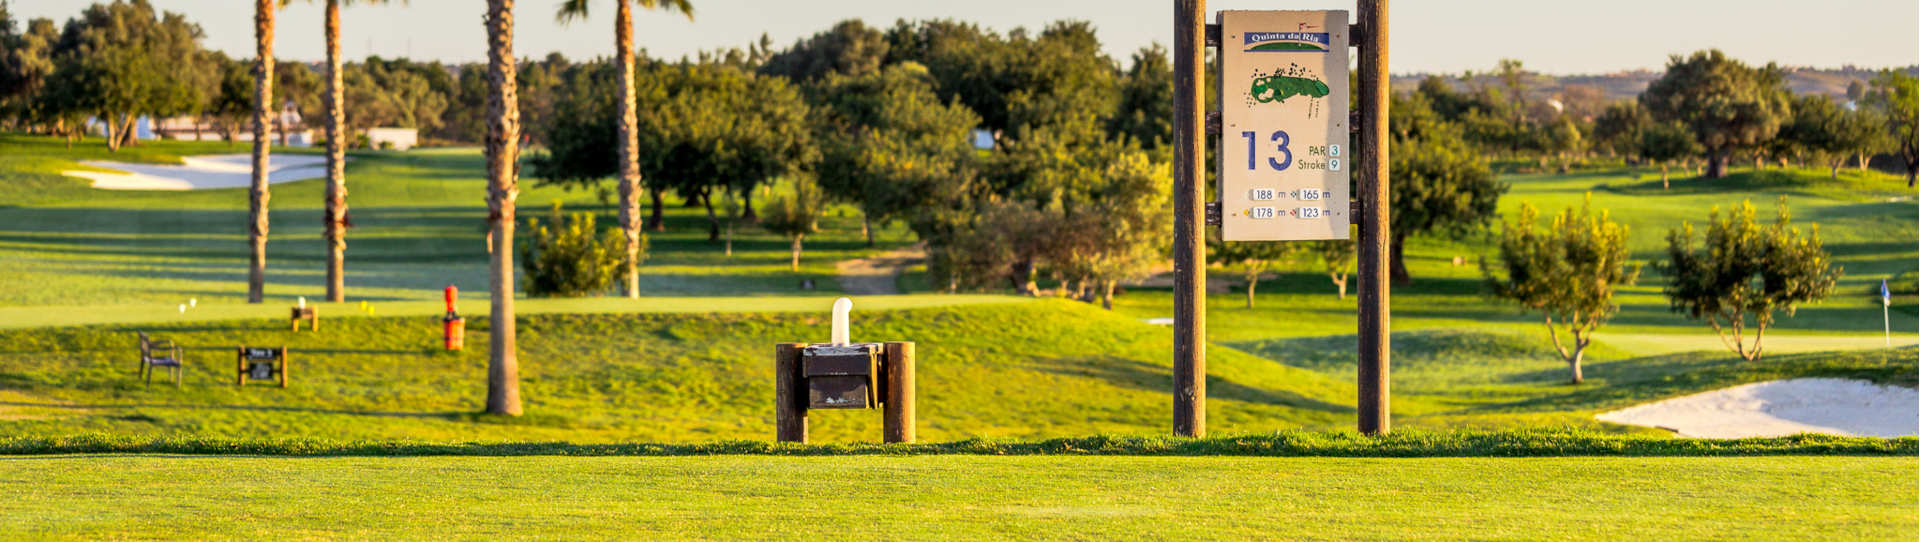 Quinta da Ria Golf Course - Photo 2